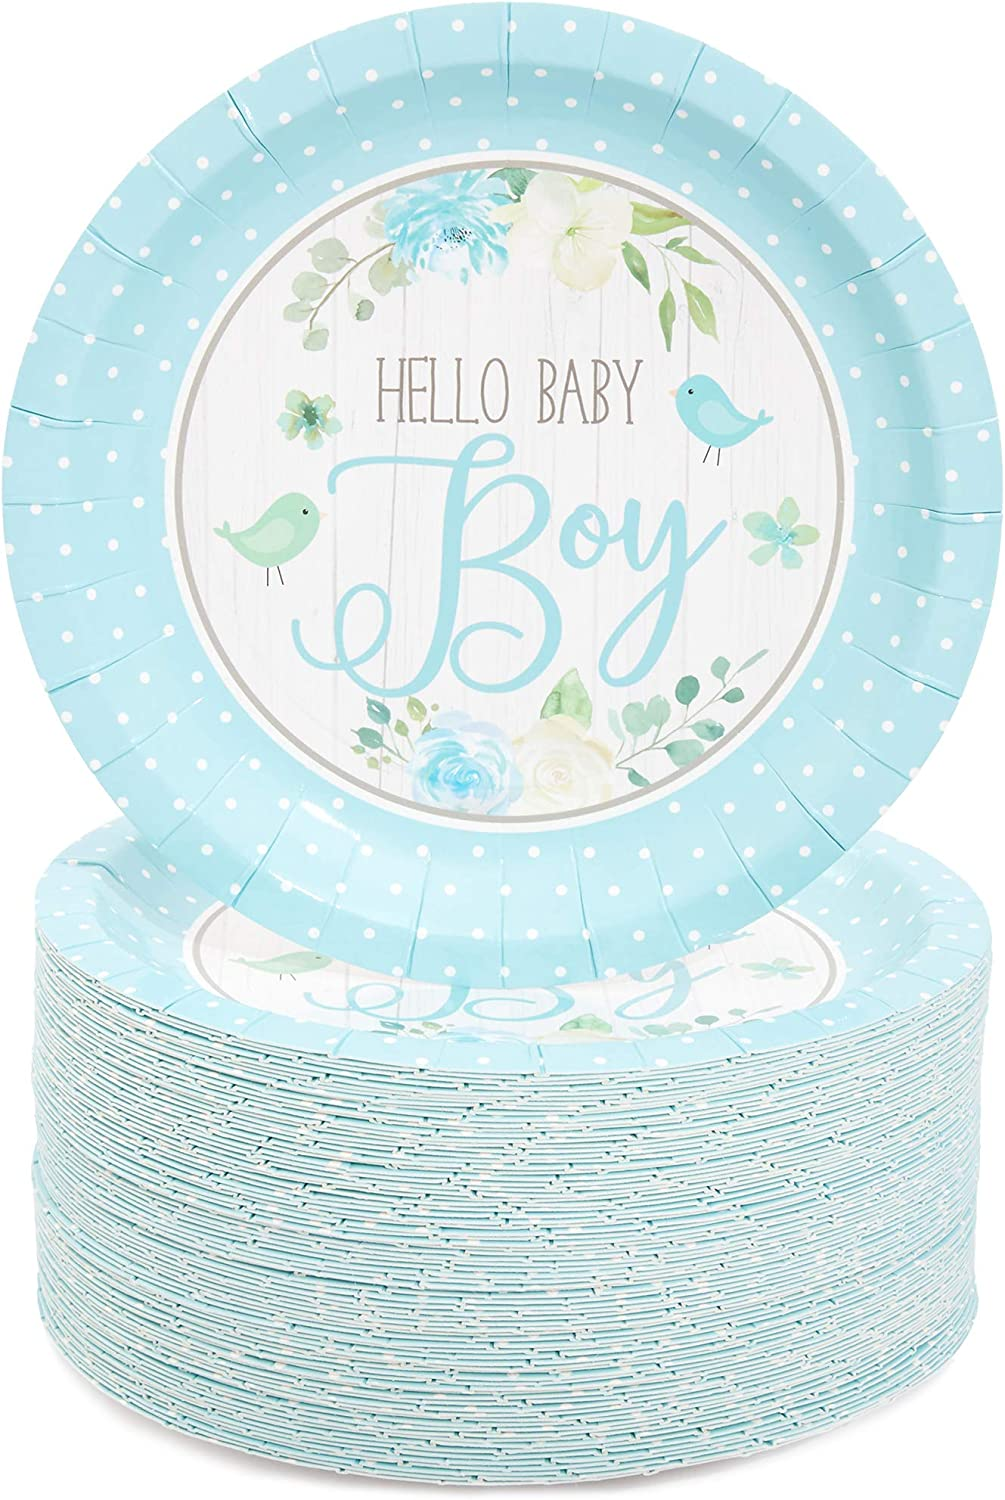 Hello Baby Boy Party Paper Plates 7 inches for Cake Dessert (80 Pack)